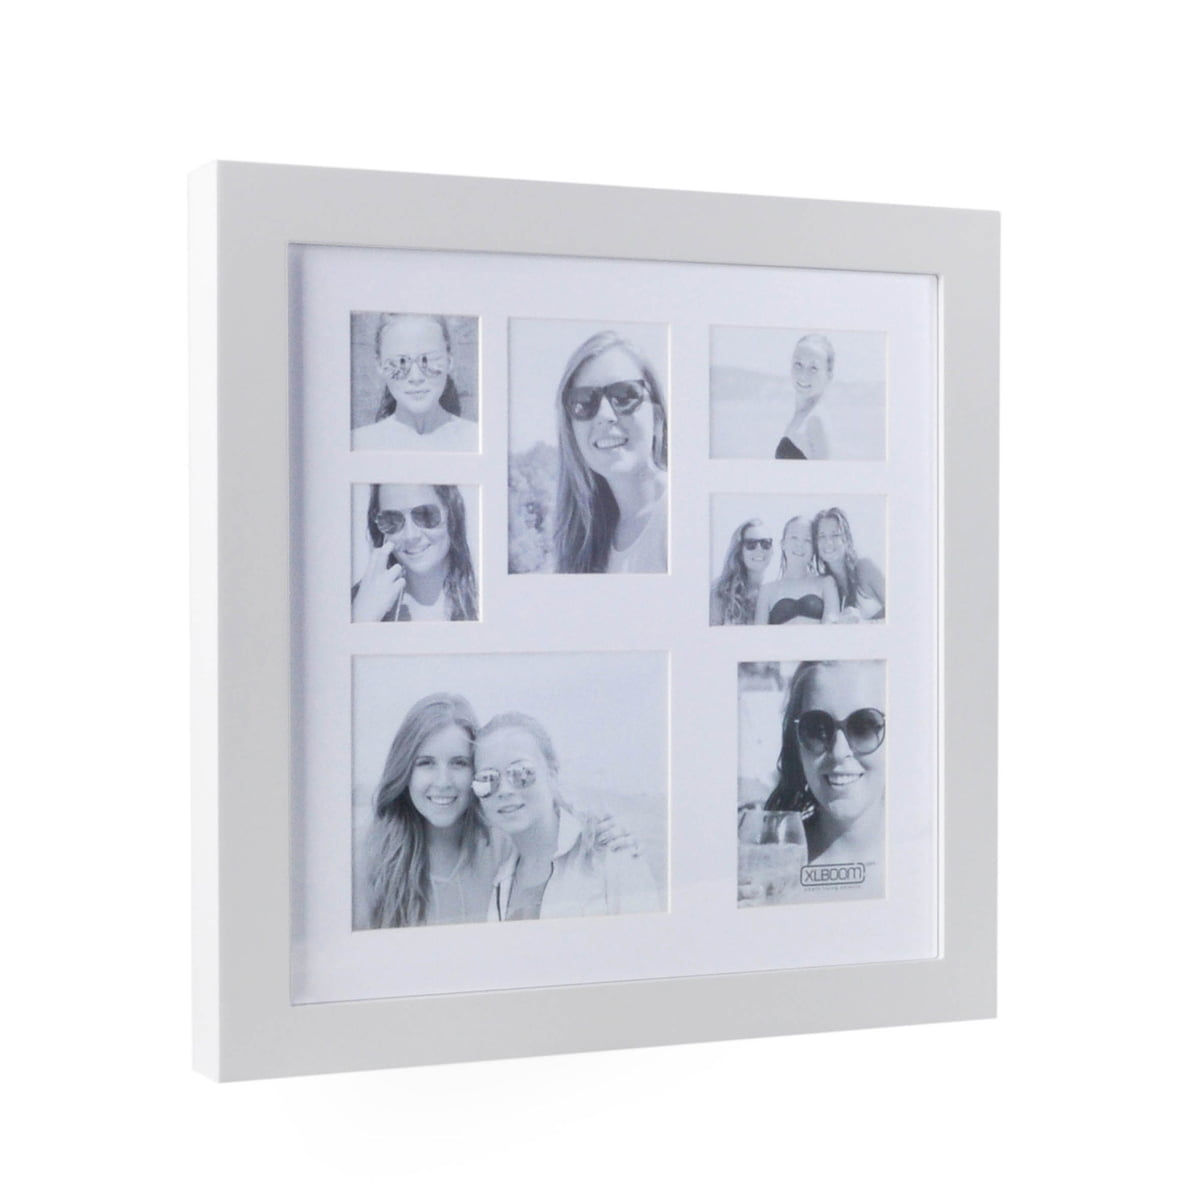 Image Frame Multi Photo by XLBoom in the shop